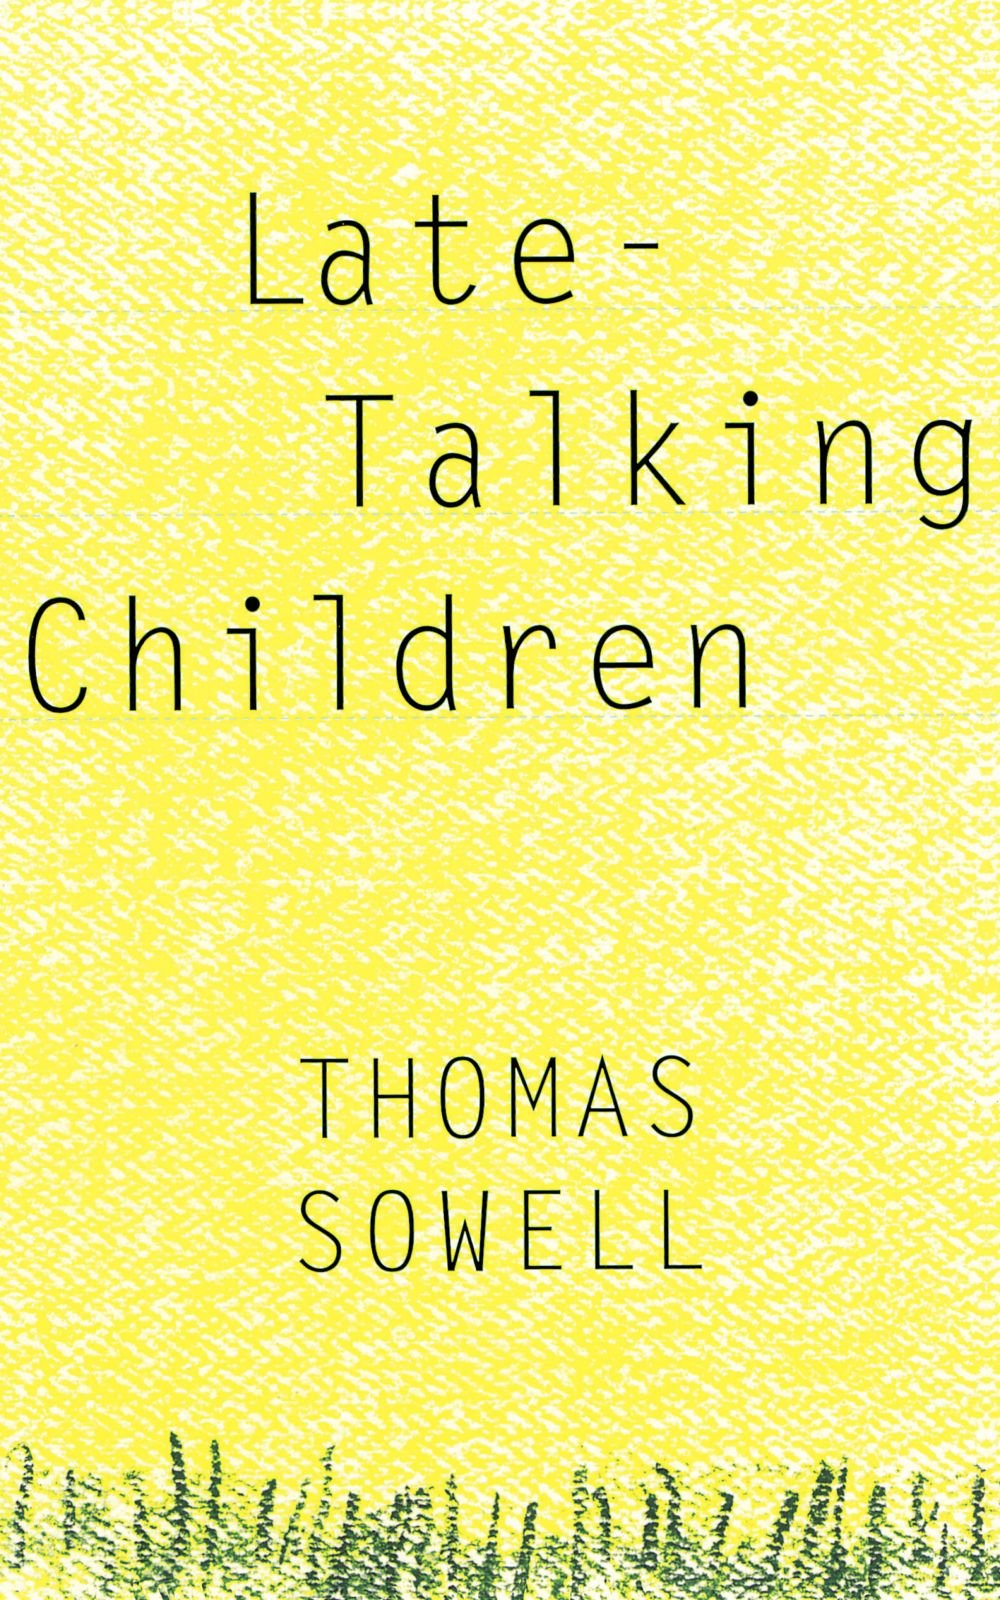 late talking children thomas sowell com books